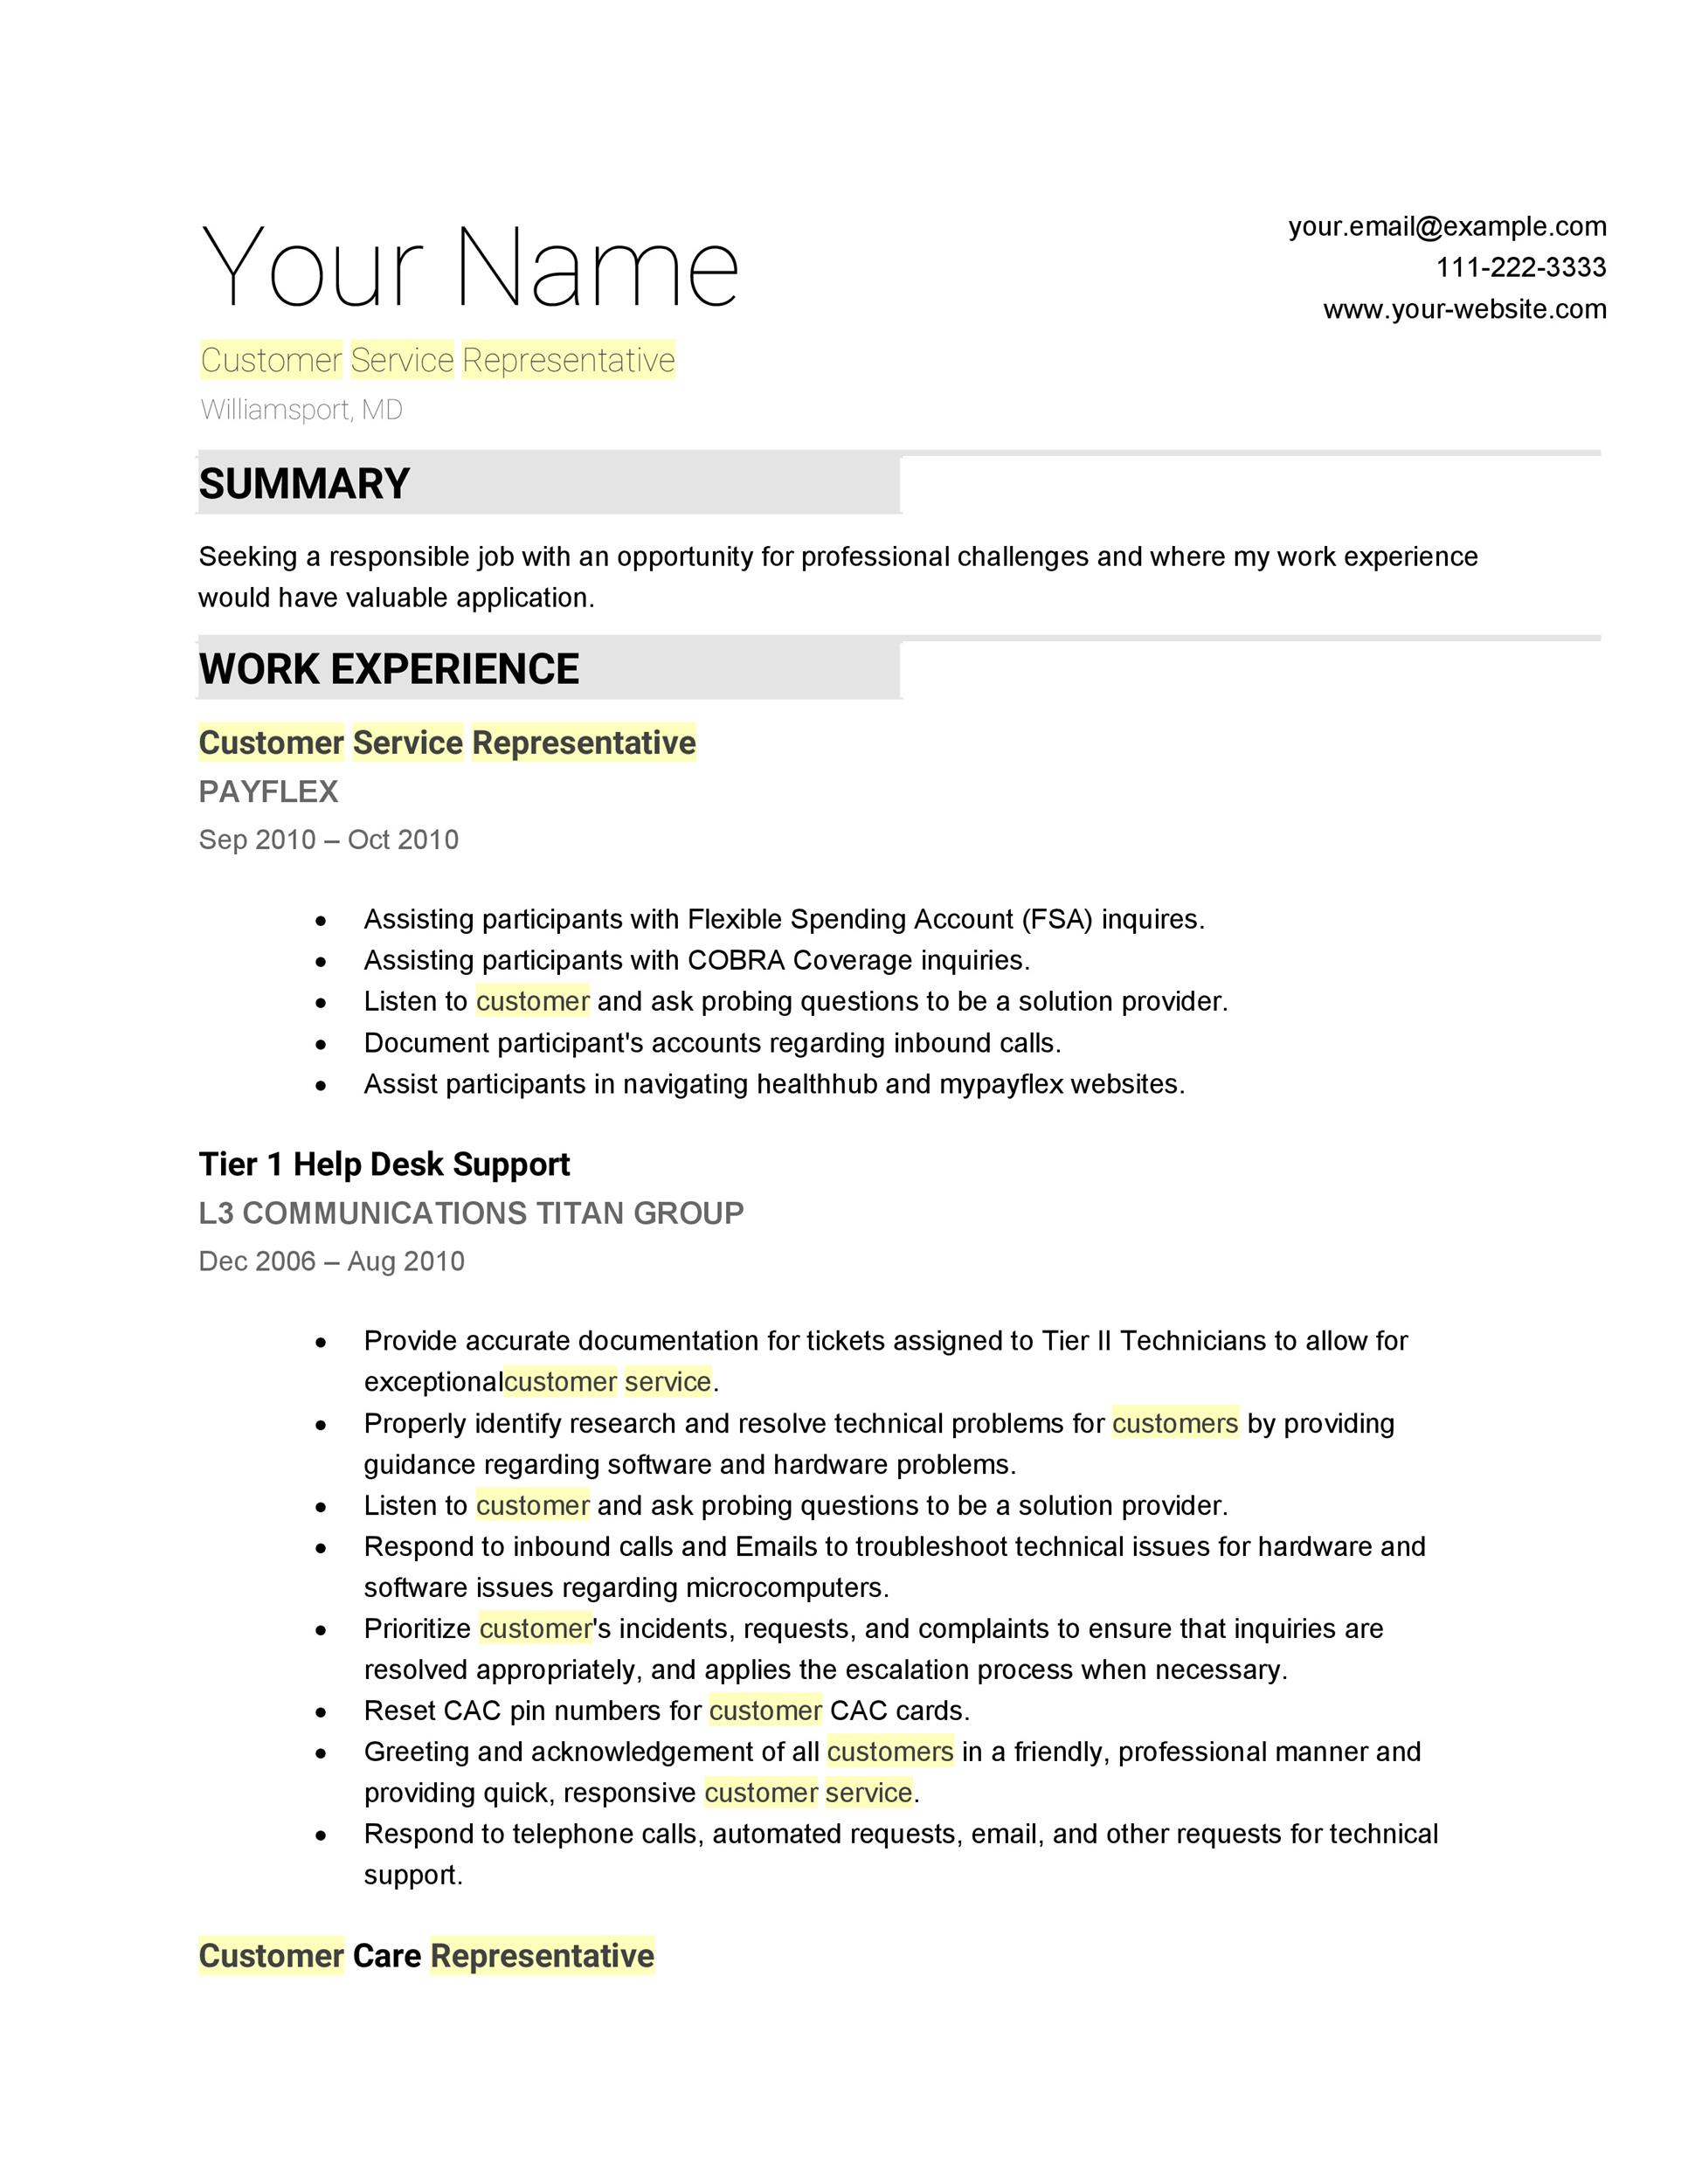 customer service resume templates